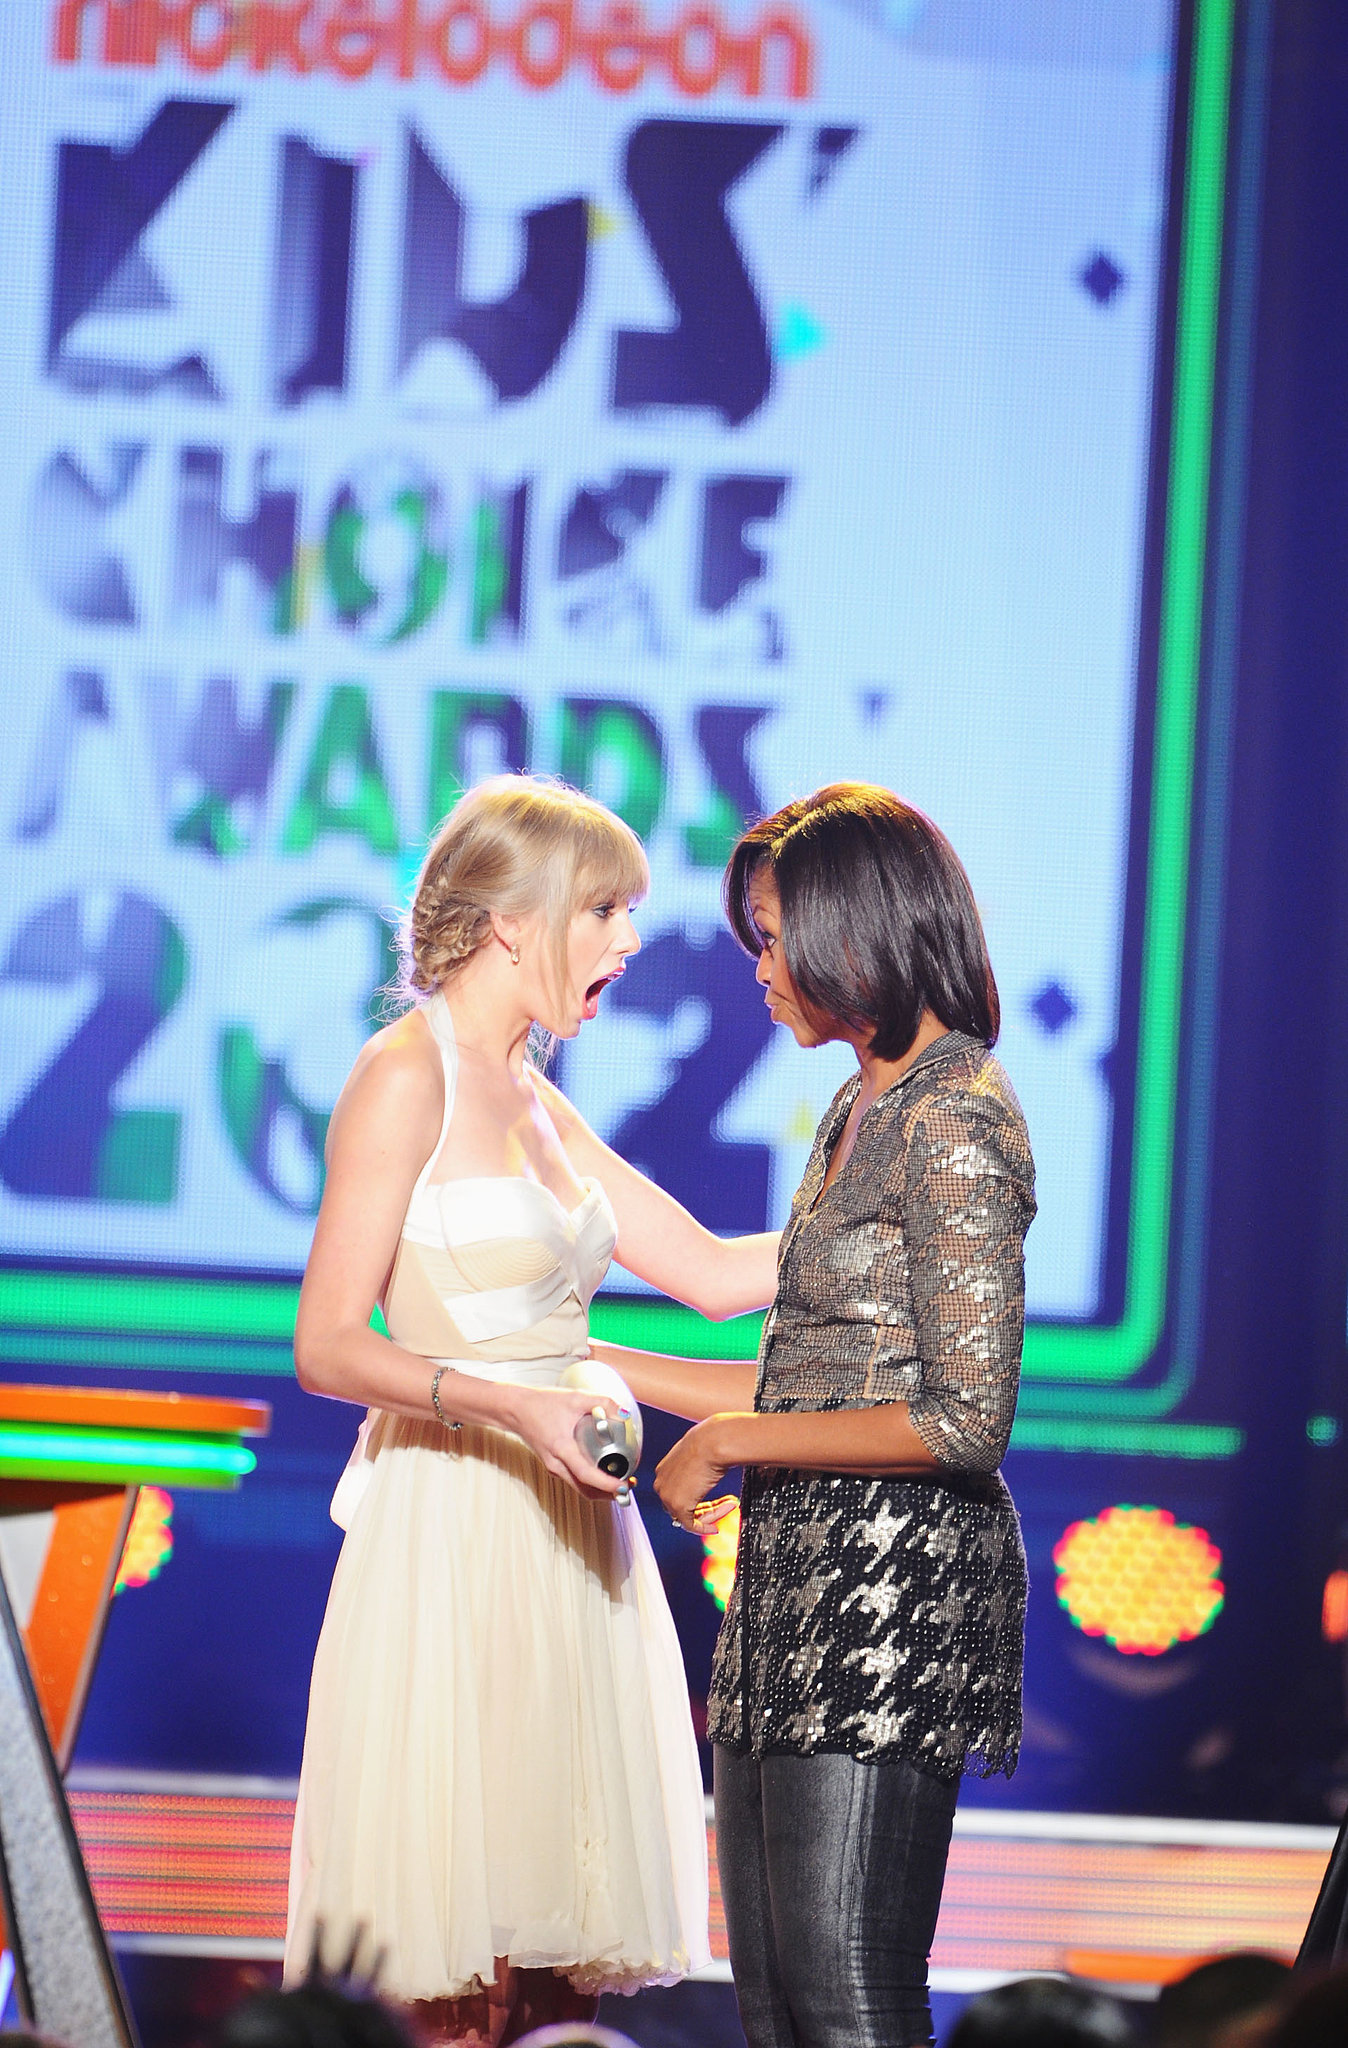 Taylor Swift wasn't expecting to be presented with an award by Michelle Obama at the Kids' Choice Awards in March 2012.